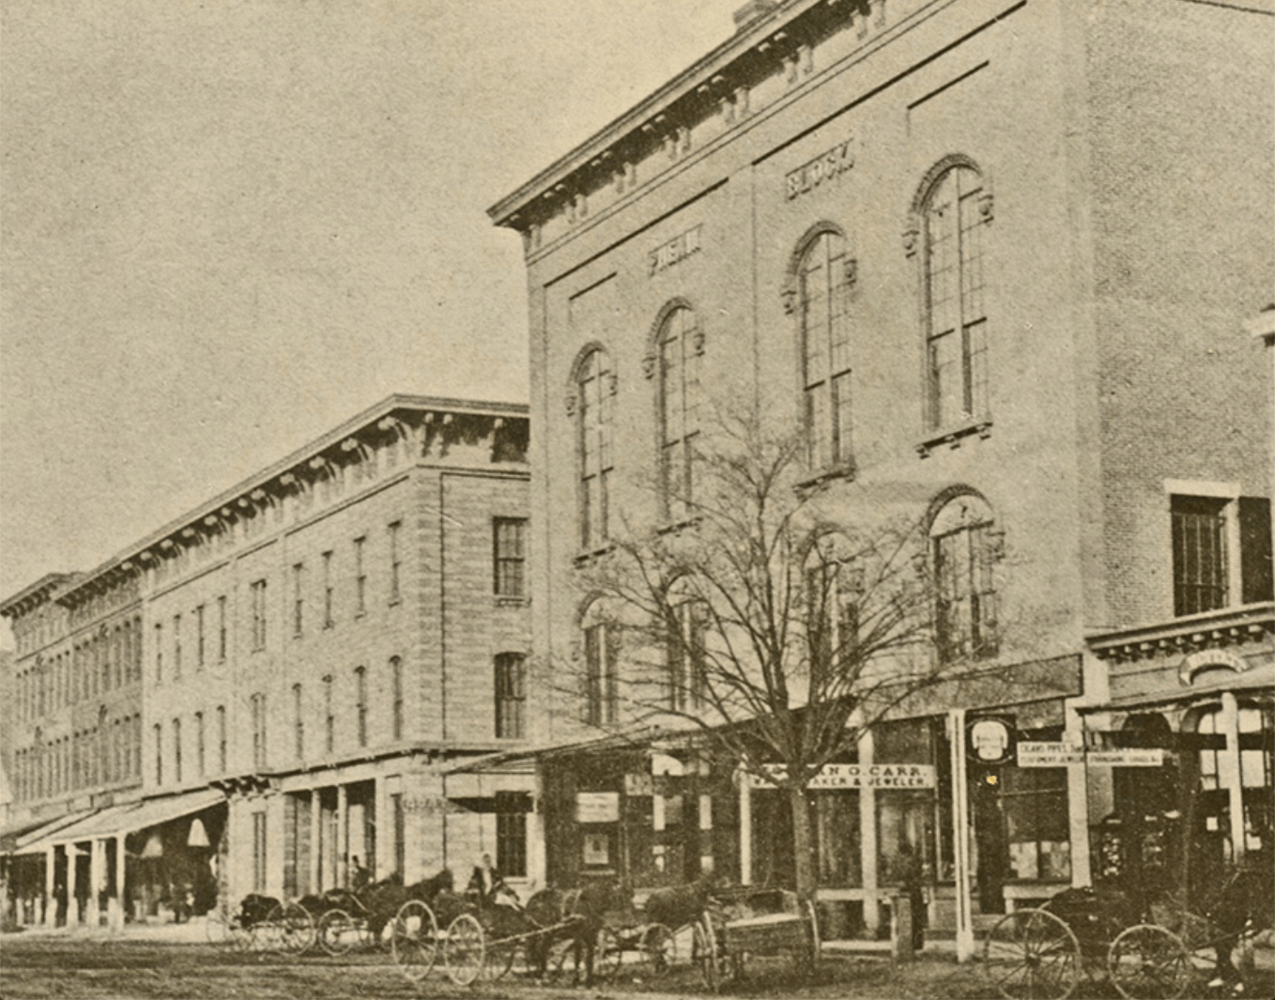 1895 Image of the Phenix Hall, Concord, NH